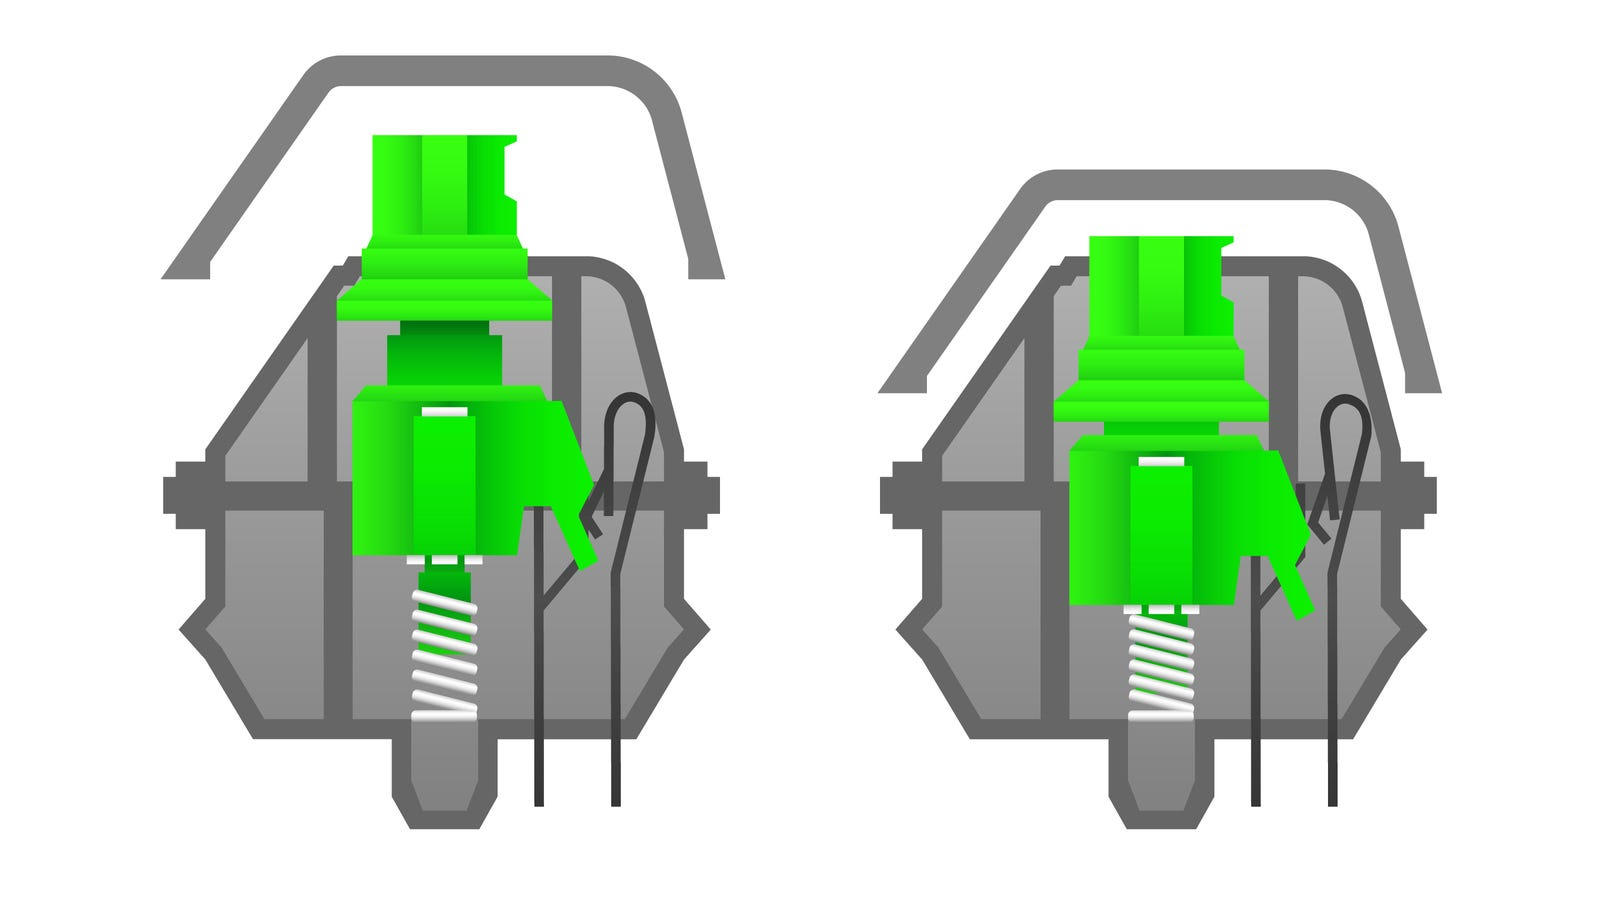 Side-view diagram of a mechanical switch